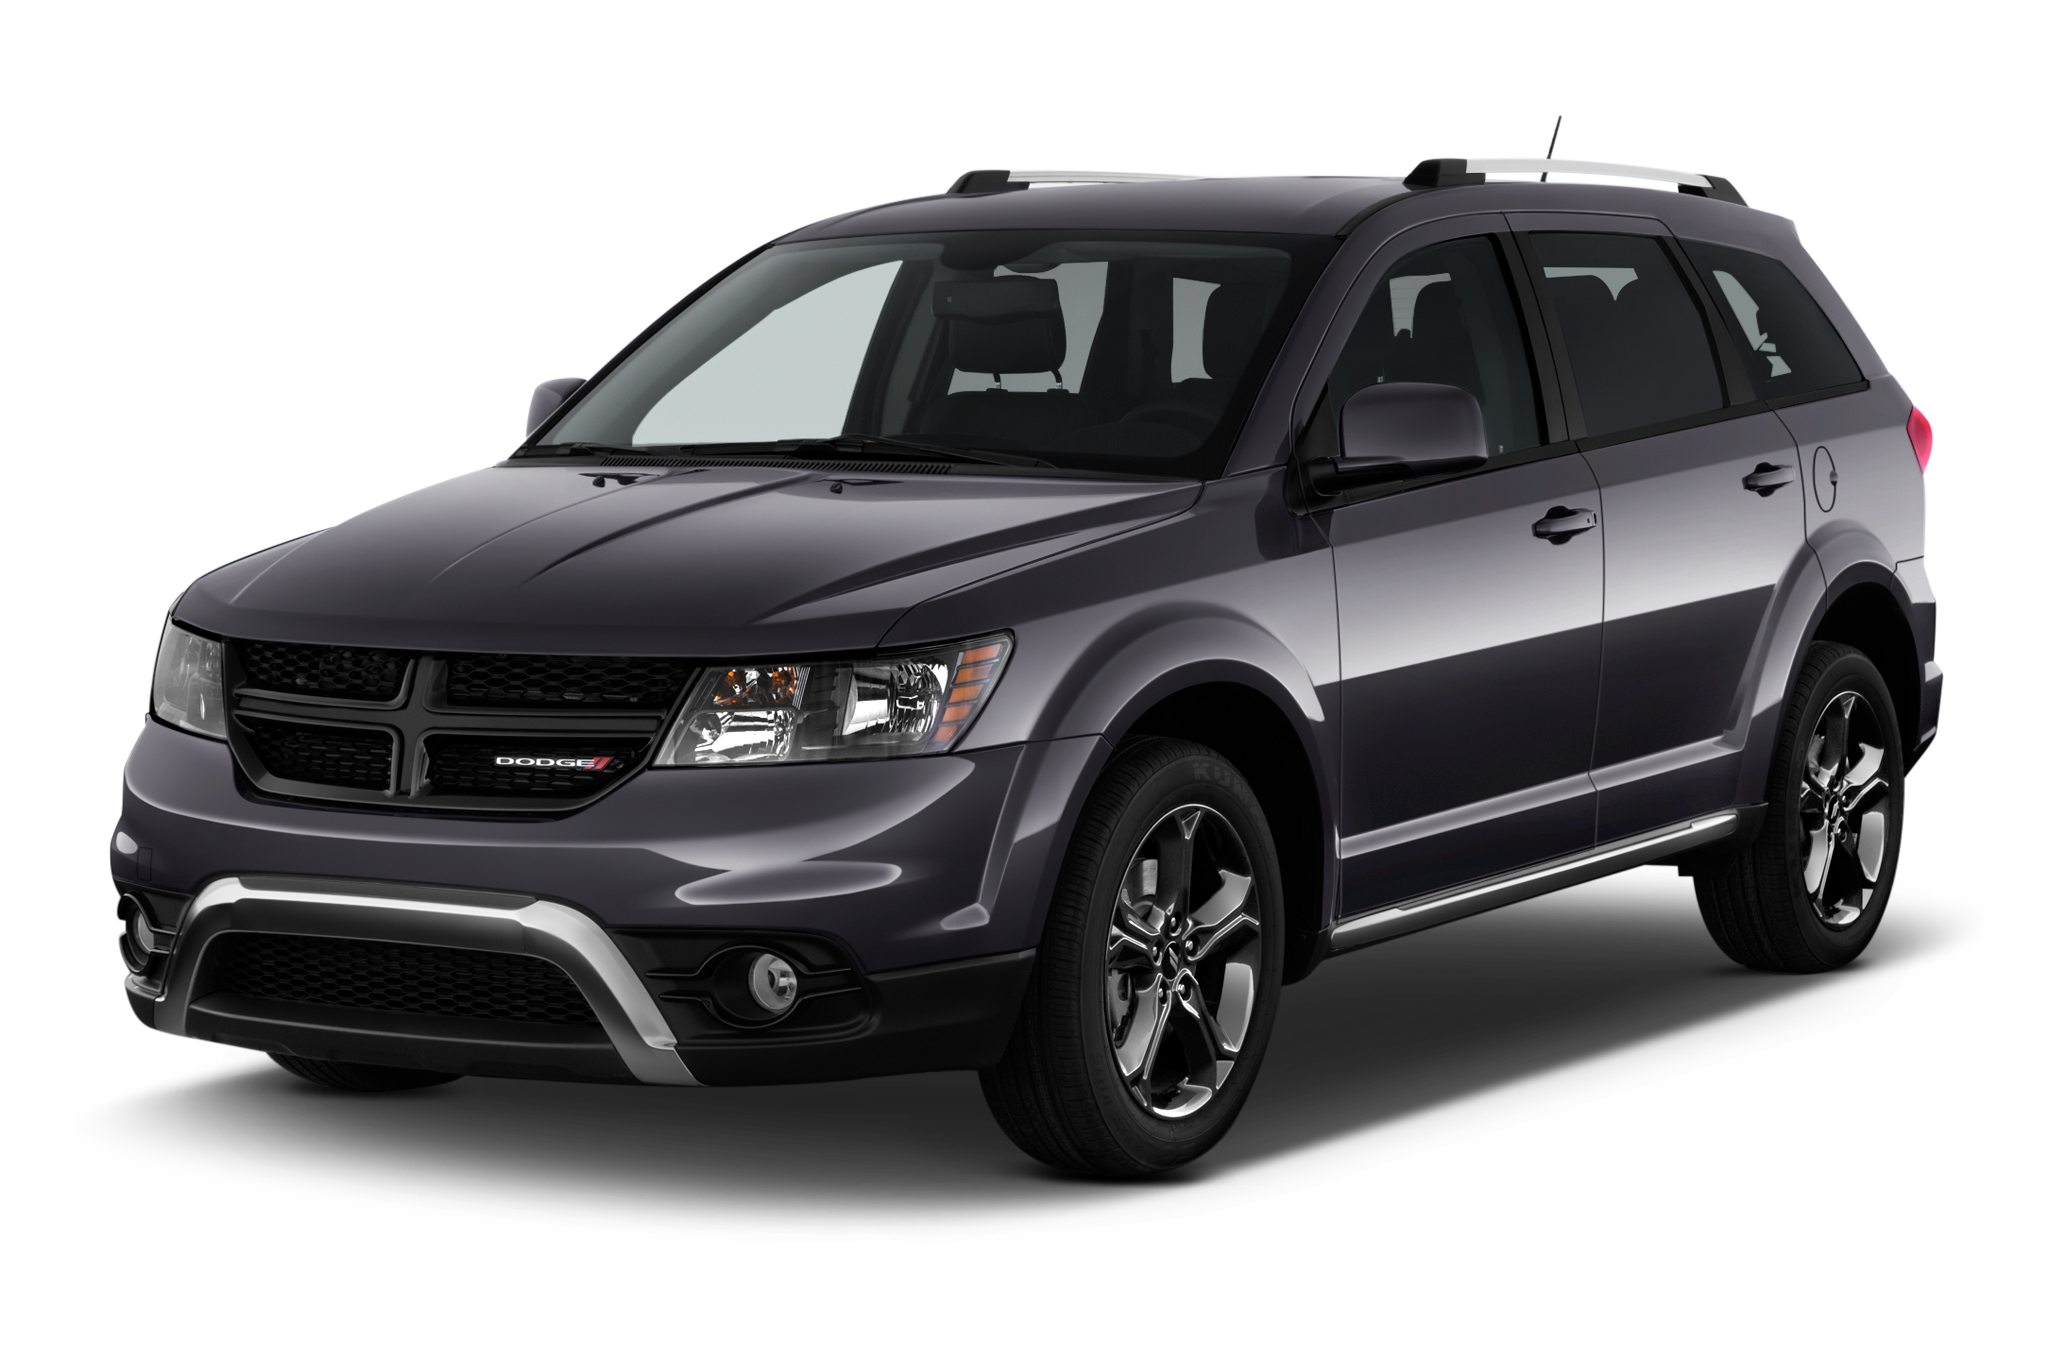 2018 dodge journey se fwd photos and videos msn autos. Black Bedroom Furniture Sets. Home Design Ideas